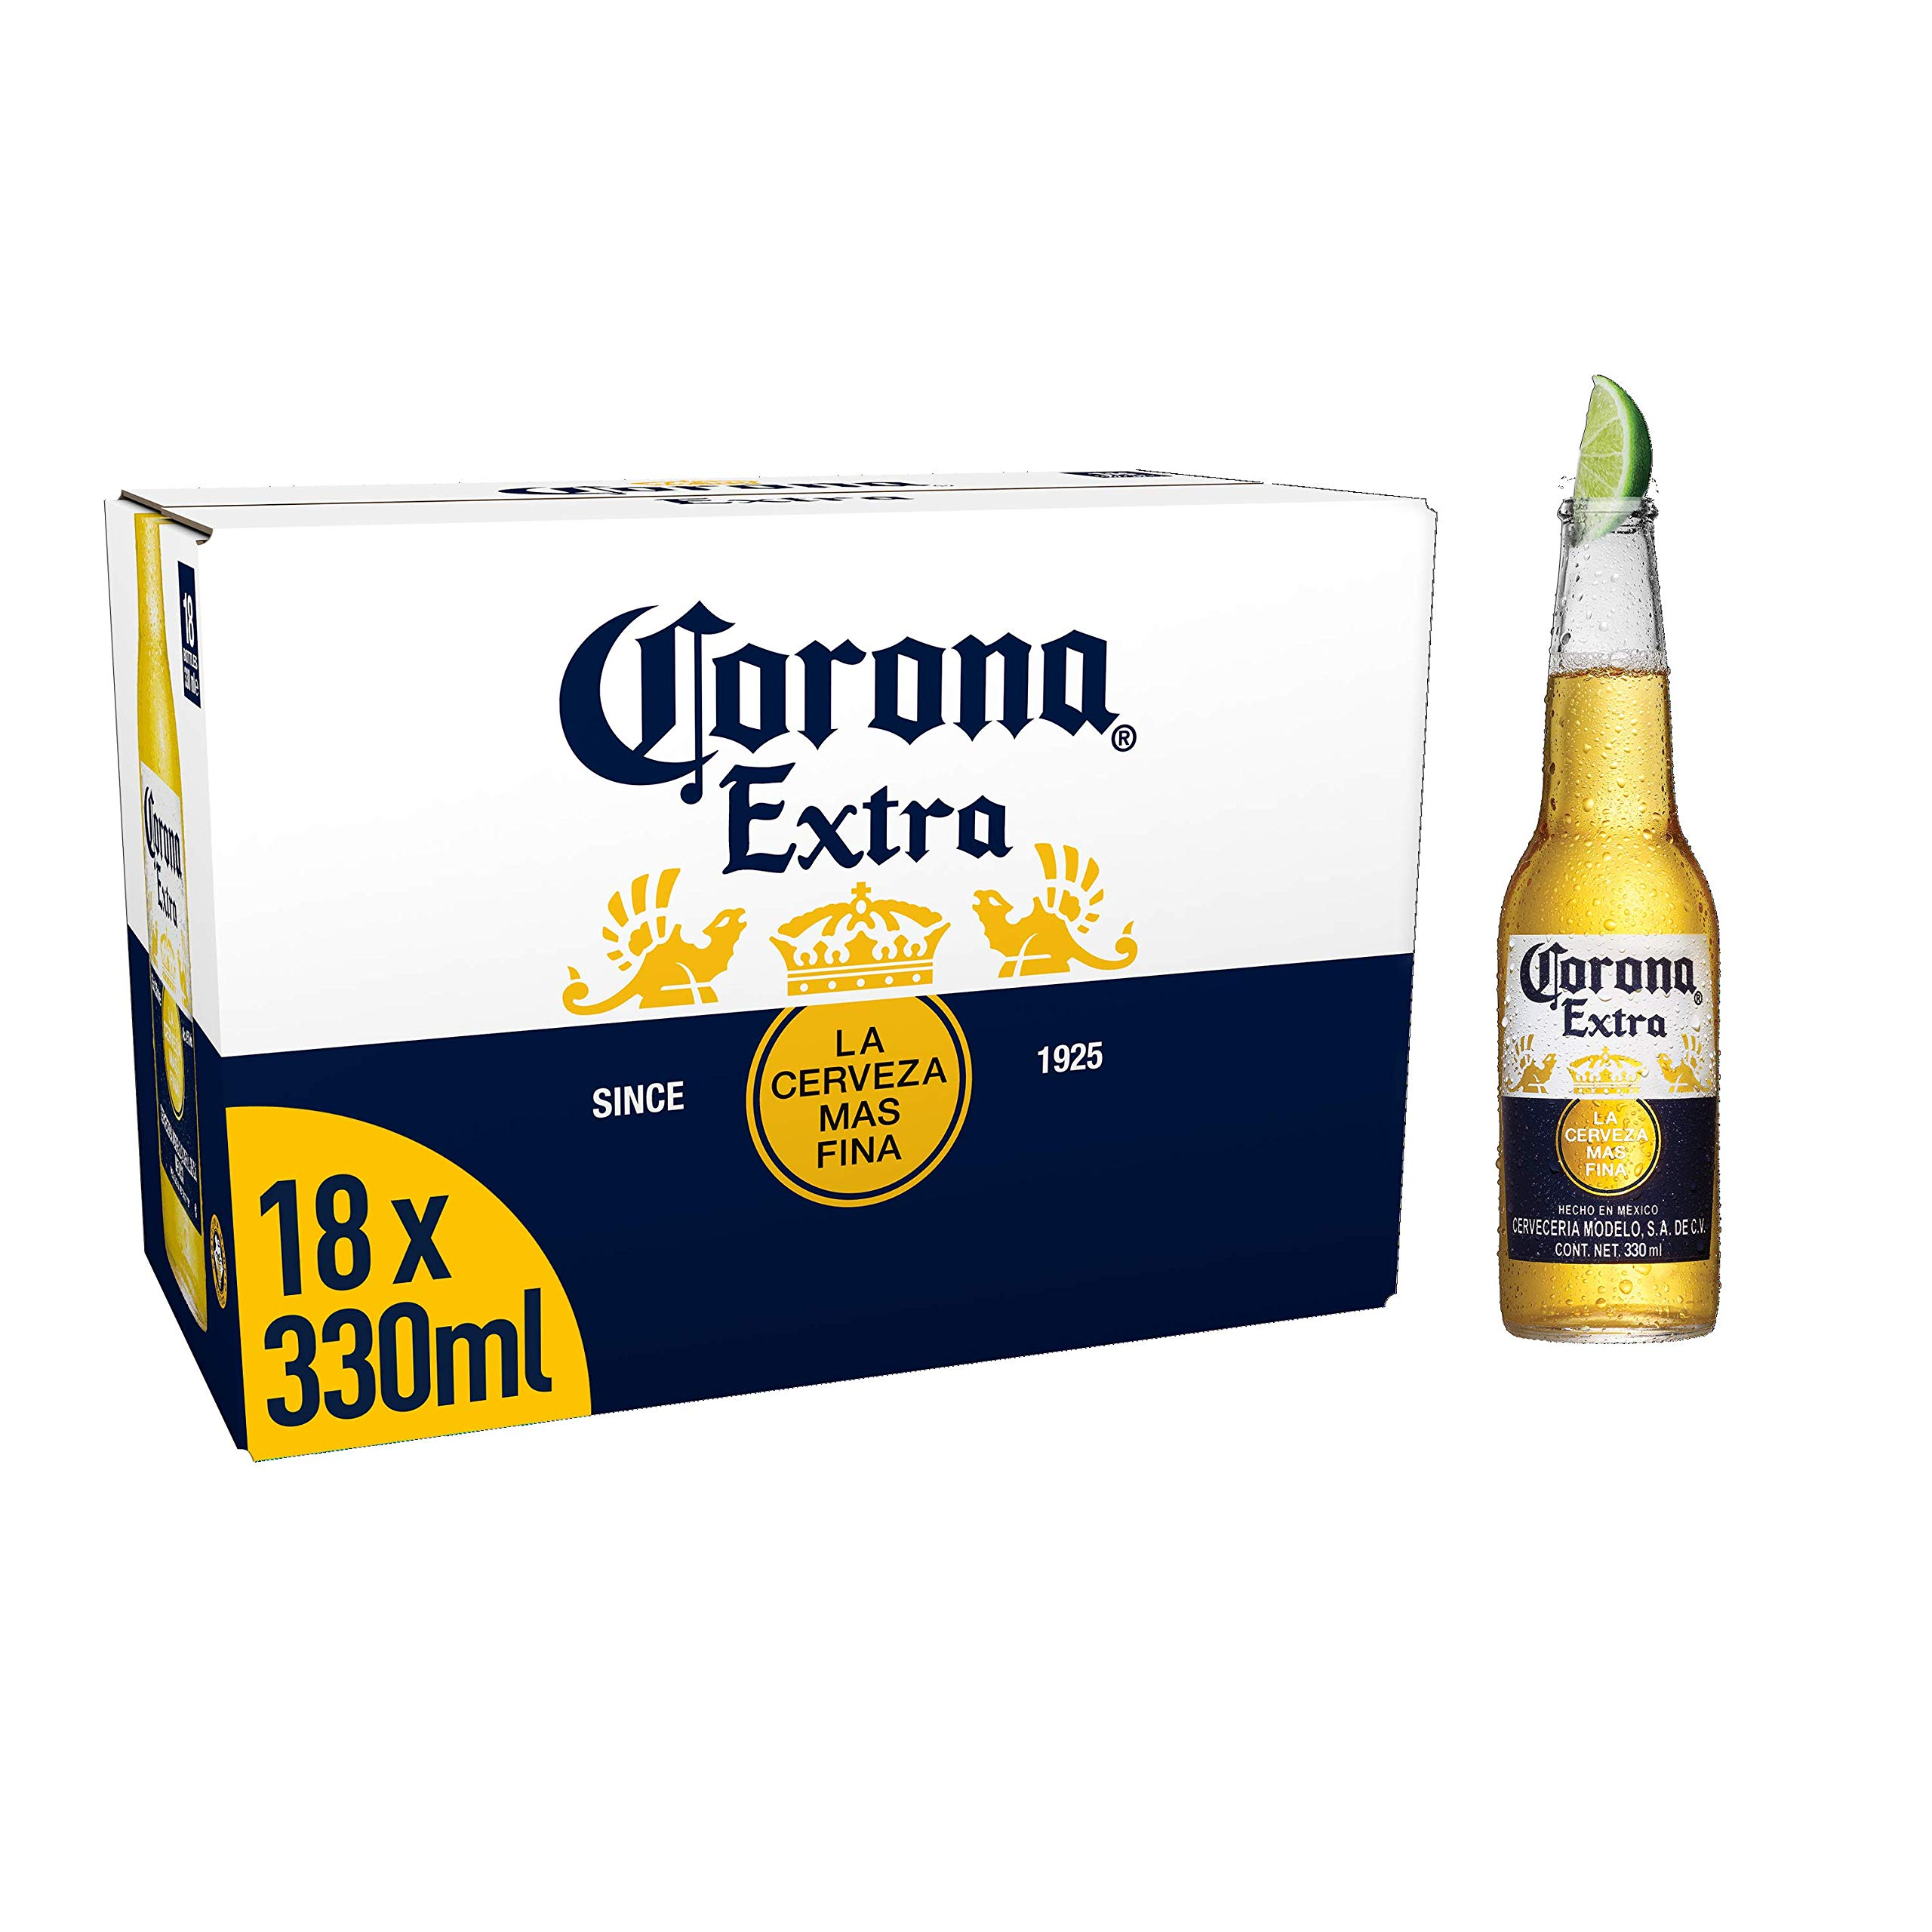 Corona Extra Mexican Lager Beer Bottles, 18 x 330ml